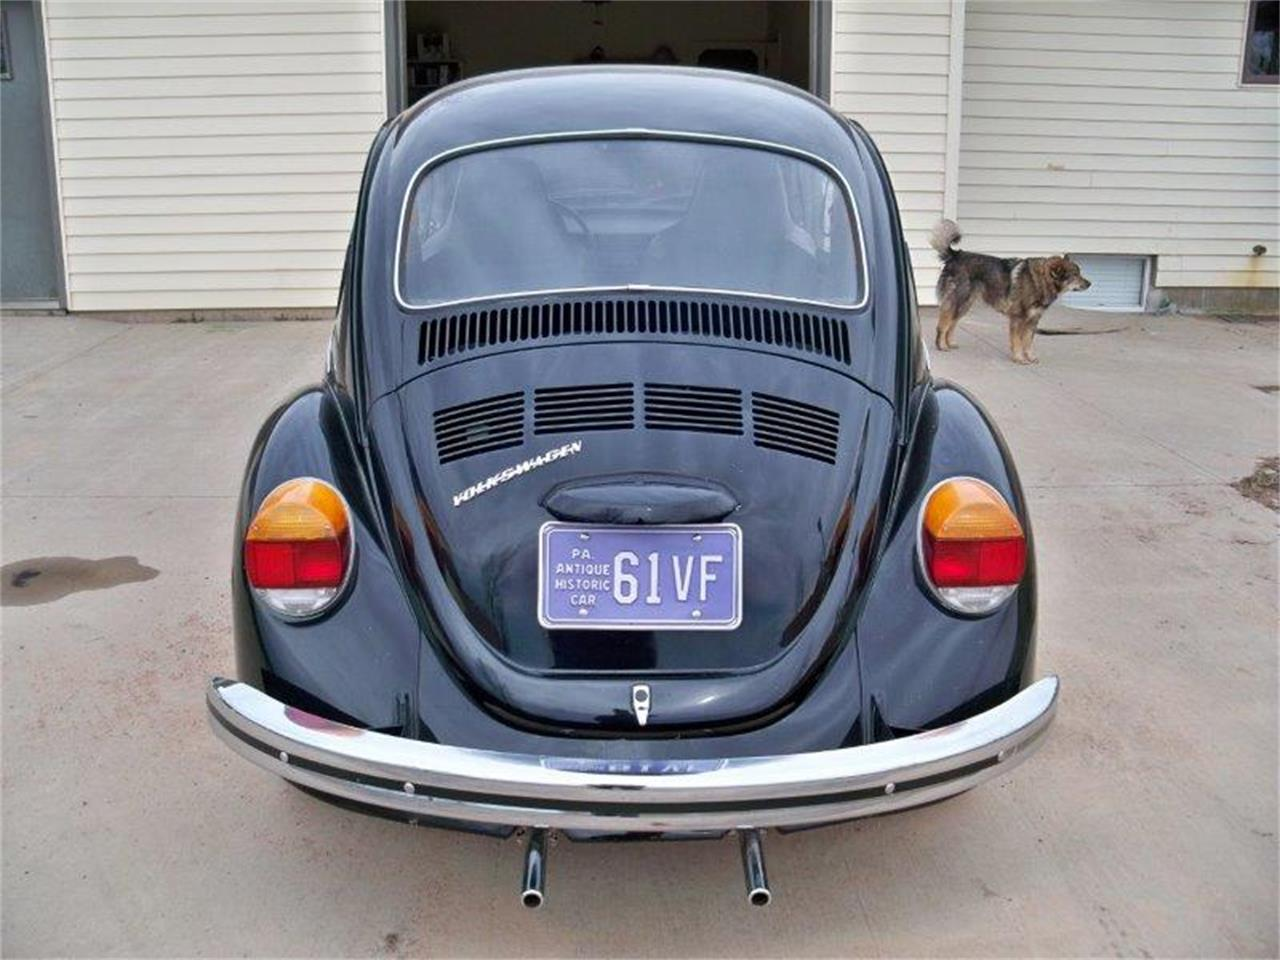 Large Picture of Classic '73 Volkswagen Super Beetle - $6,500.00 Offered by a Private Seller - HQST